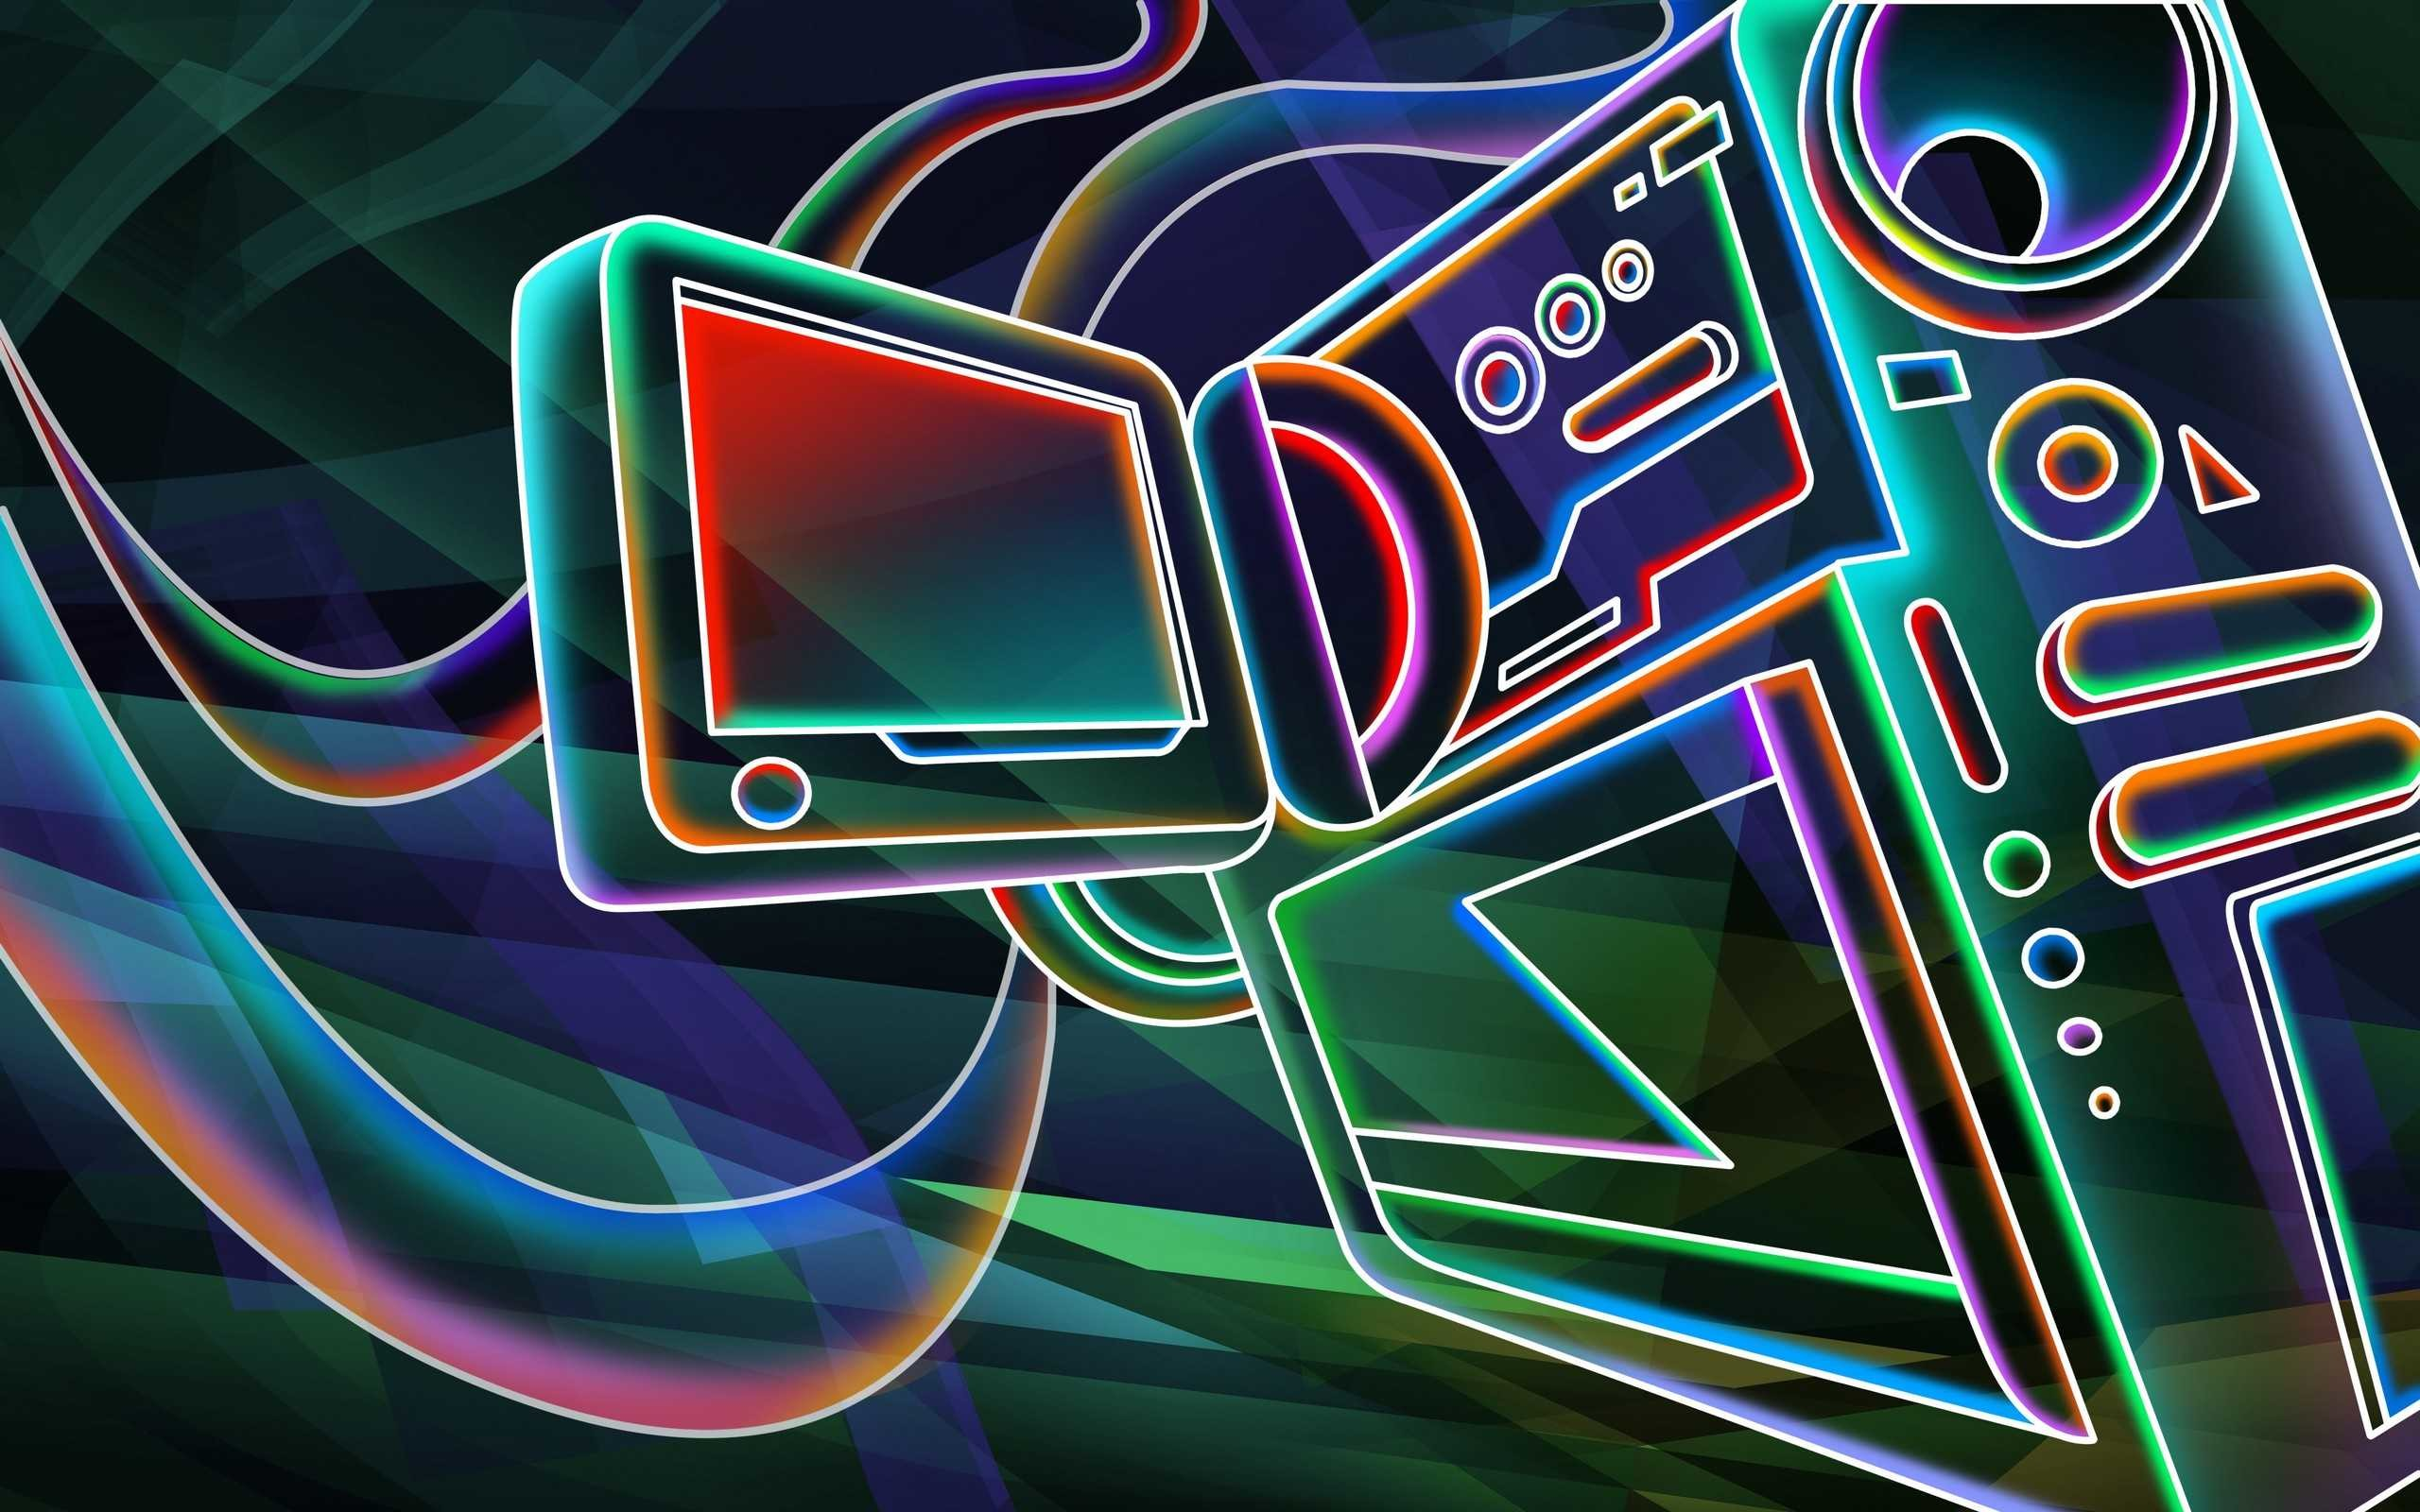 Res: 2560x1600, Cool Neon Full Hd Pics Of Pc Wallpaperneon Colorful